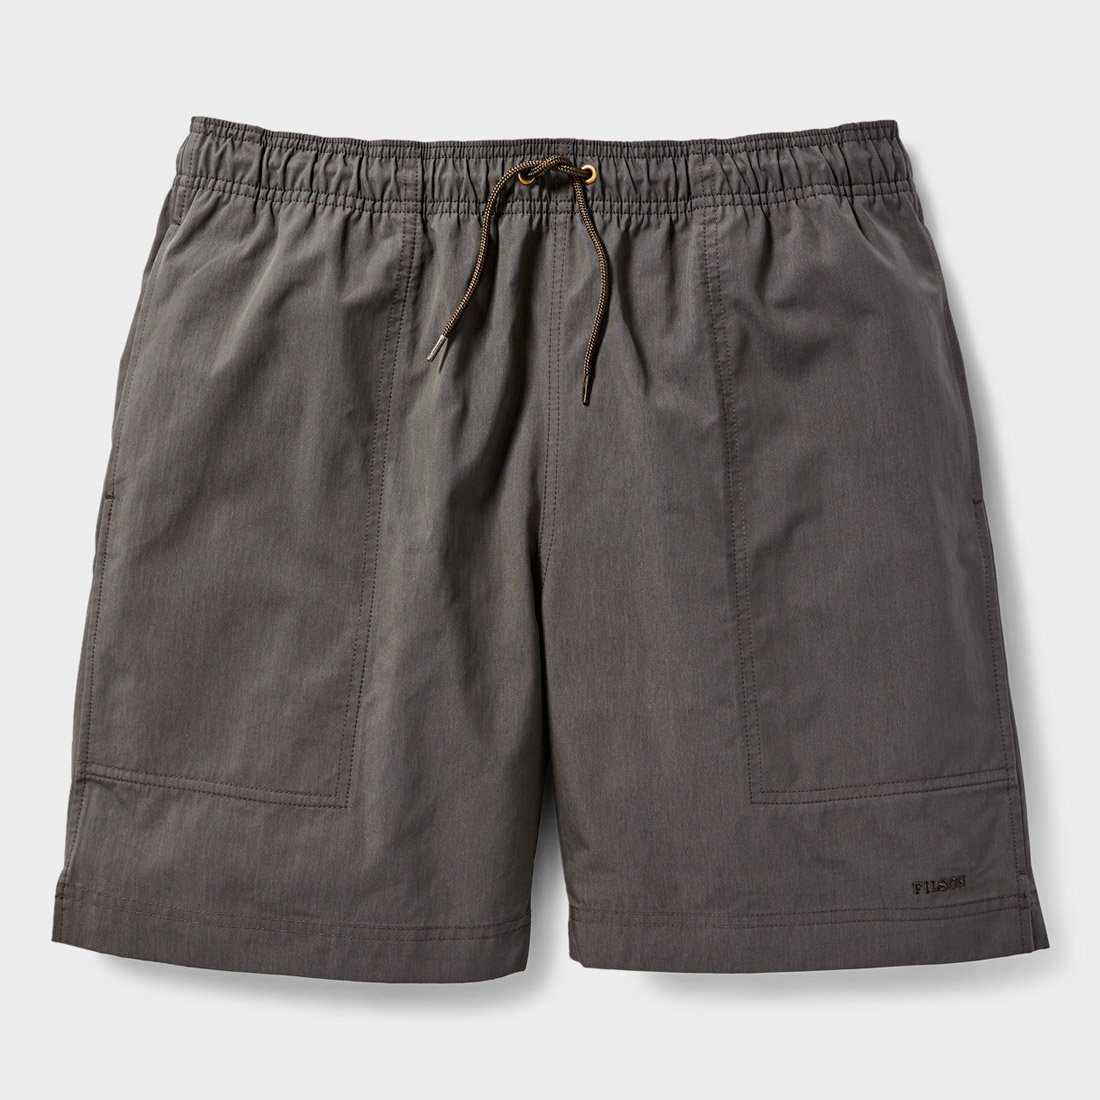 Filson Green River Water Shorts Charcoal